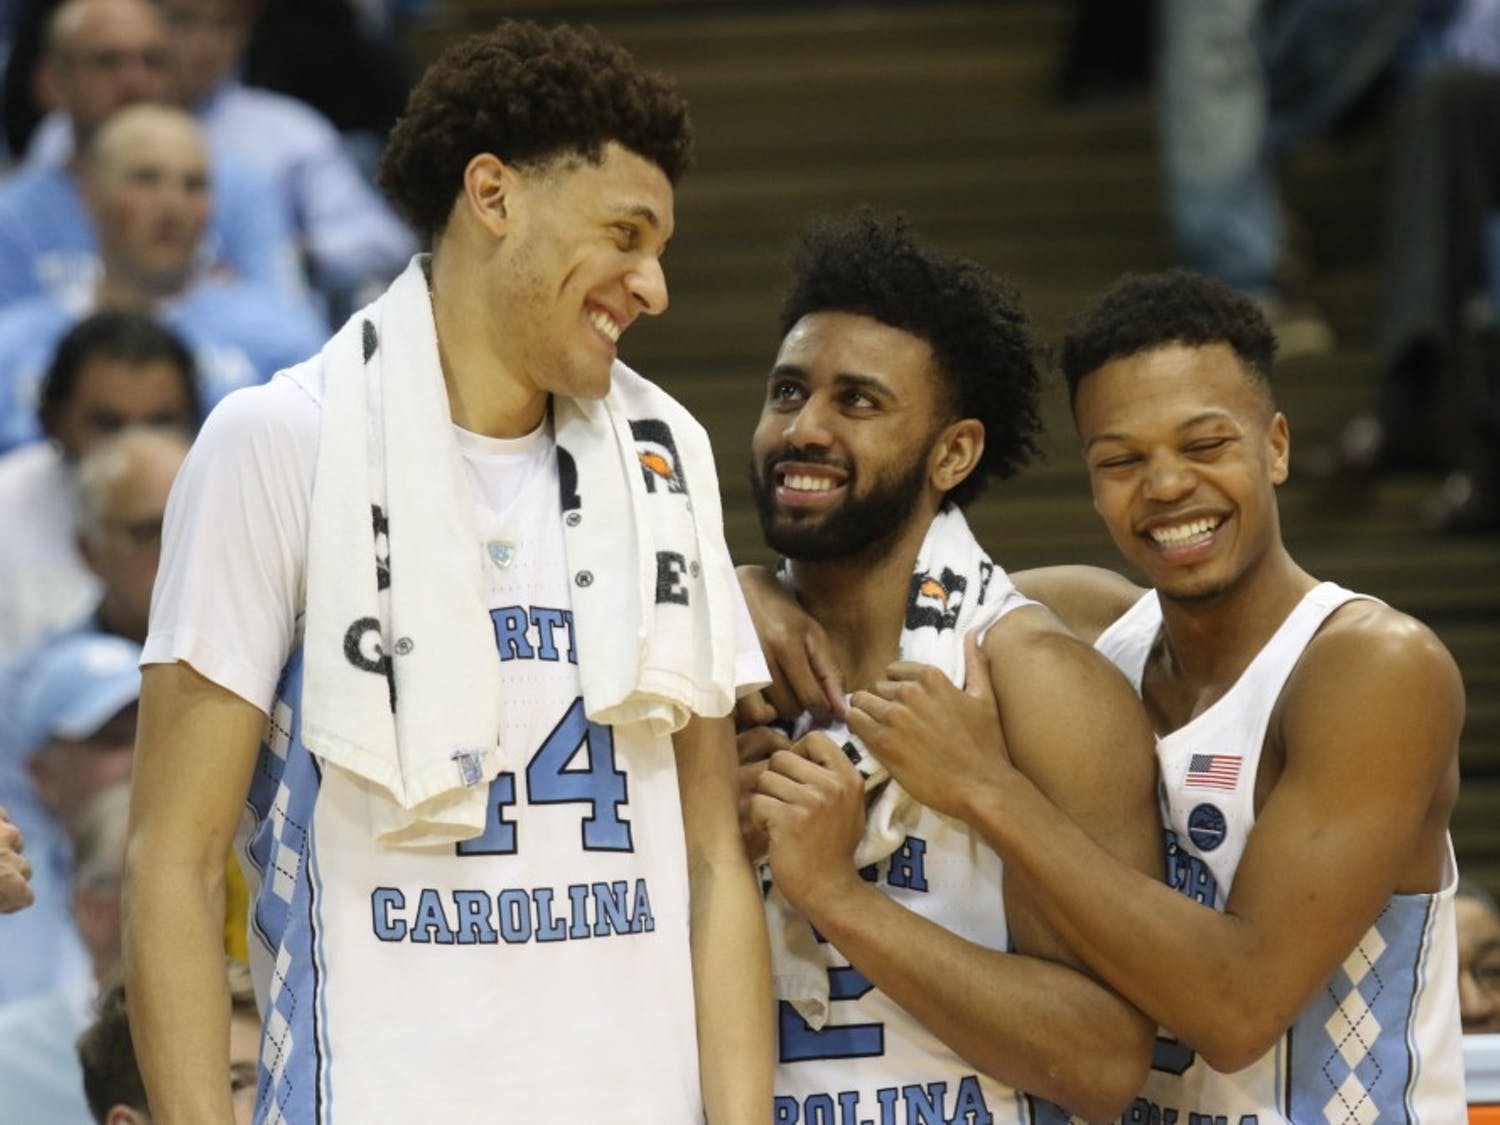 The Tar Heels defeated the Blue Devils on Saturday night and ended the season withthe ACC title outright for the second year in a row.